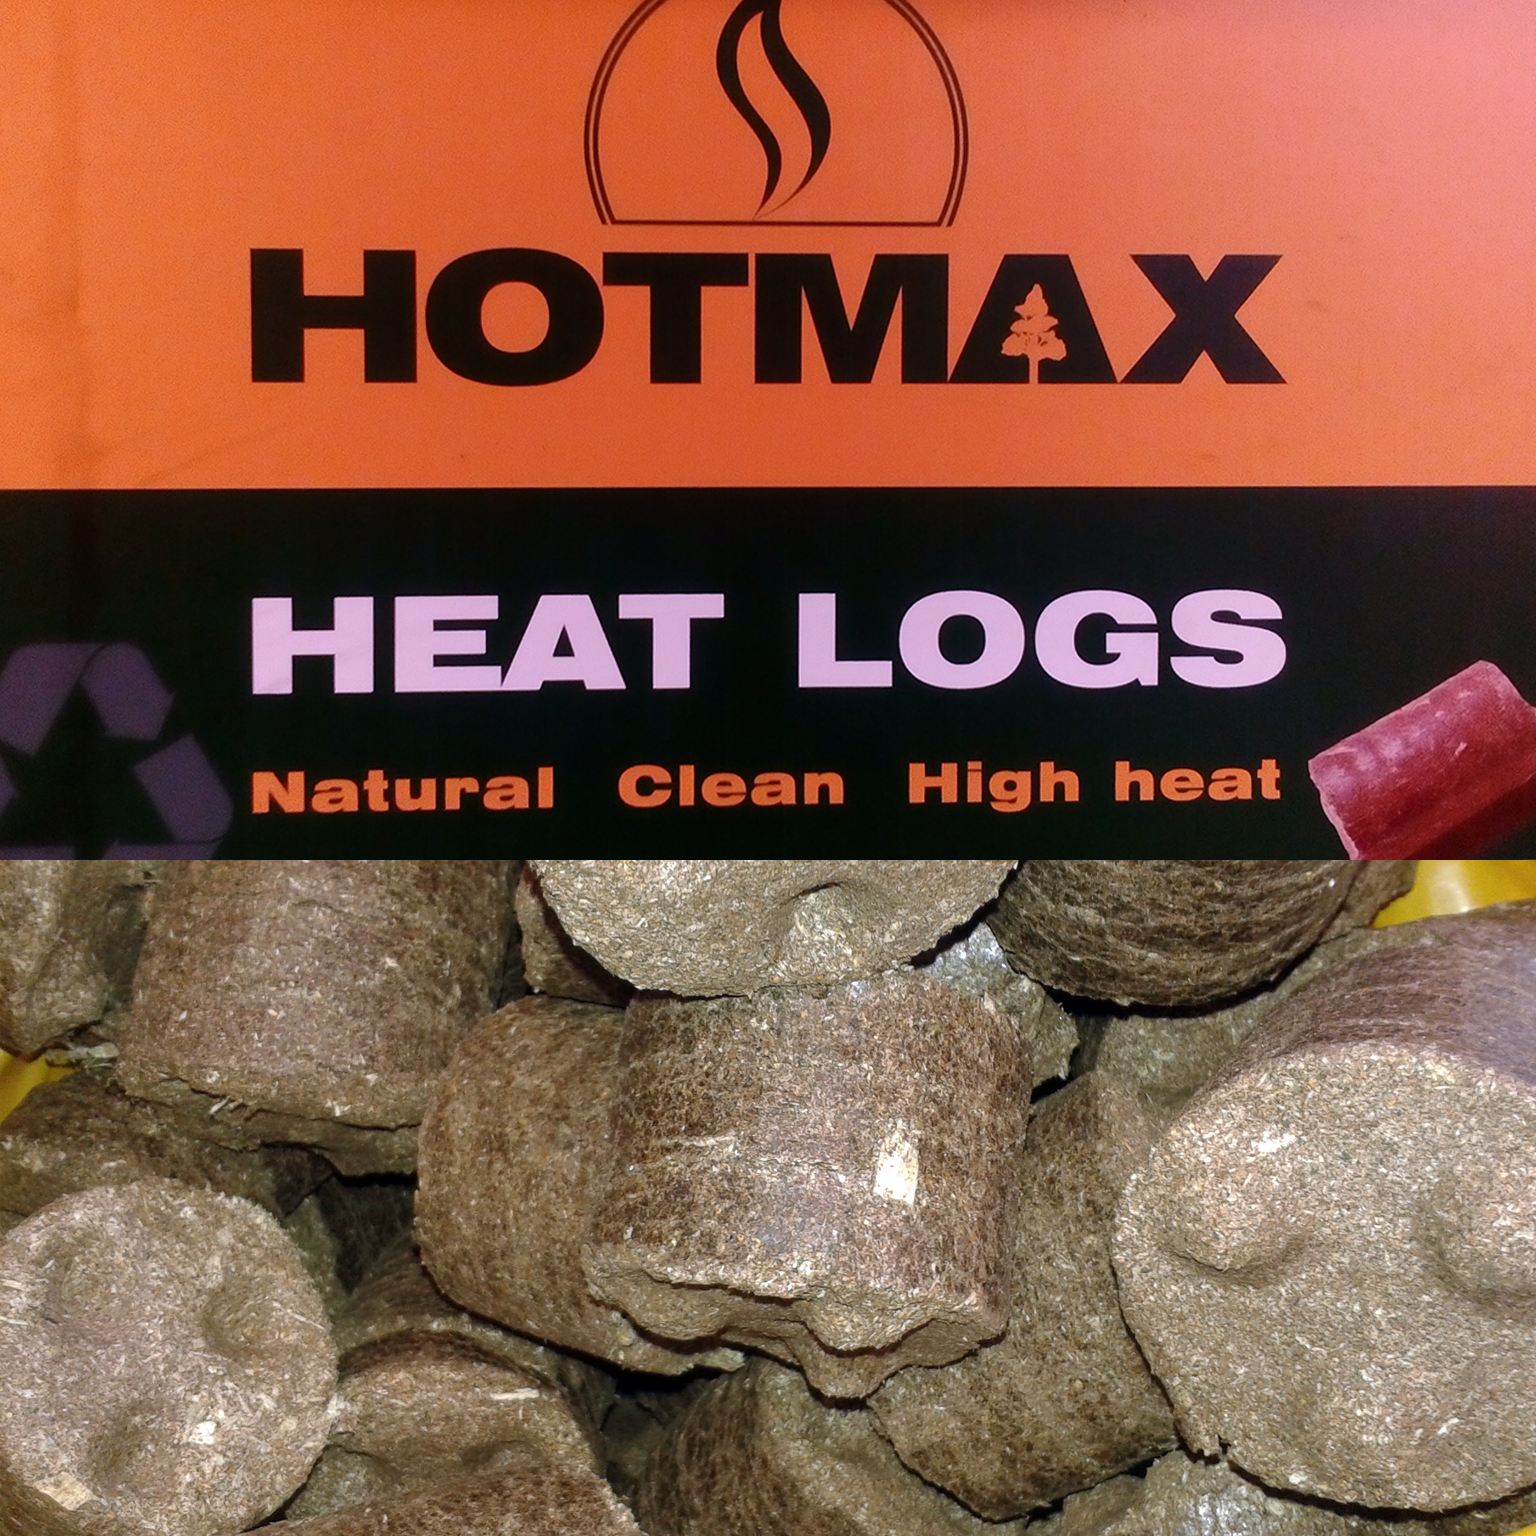 Hotmax Fuel Logs